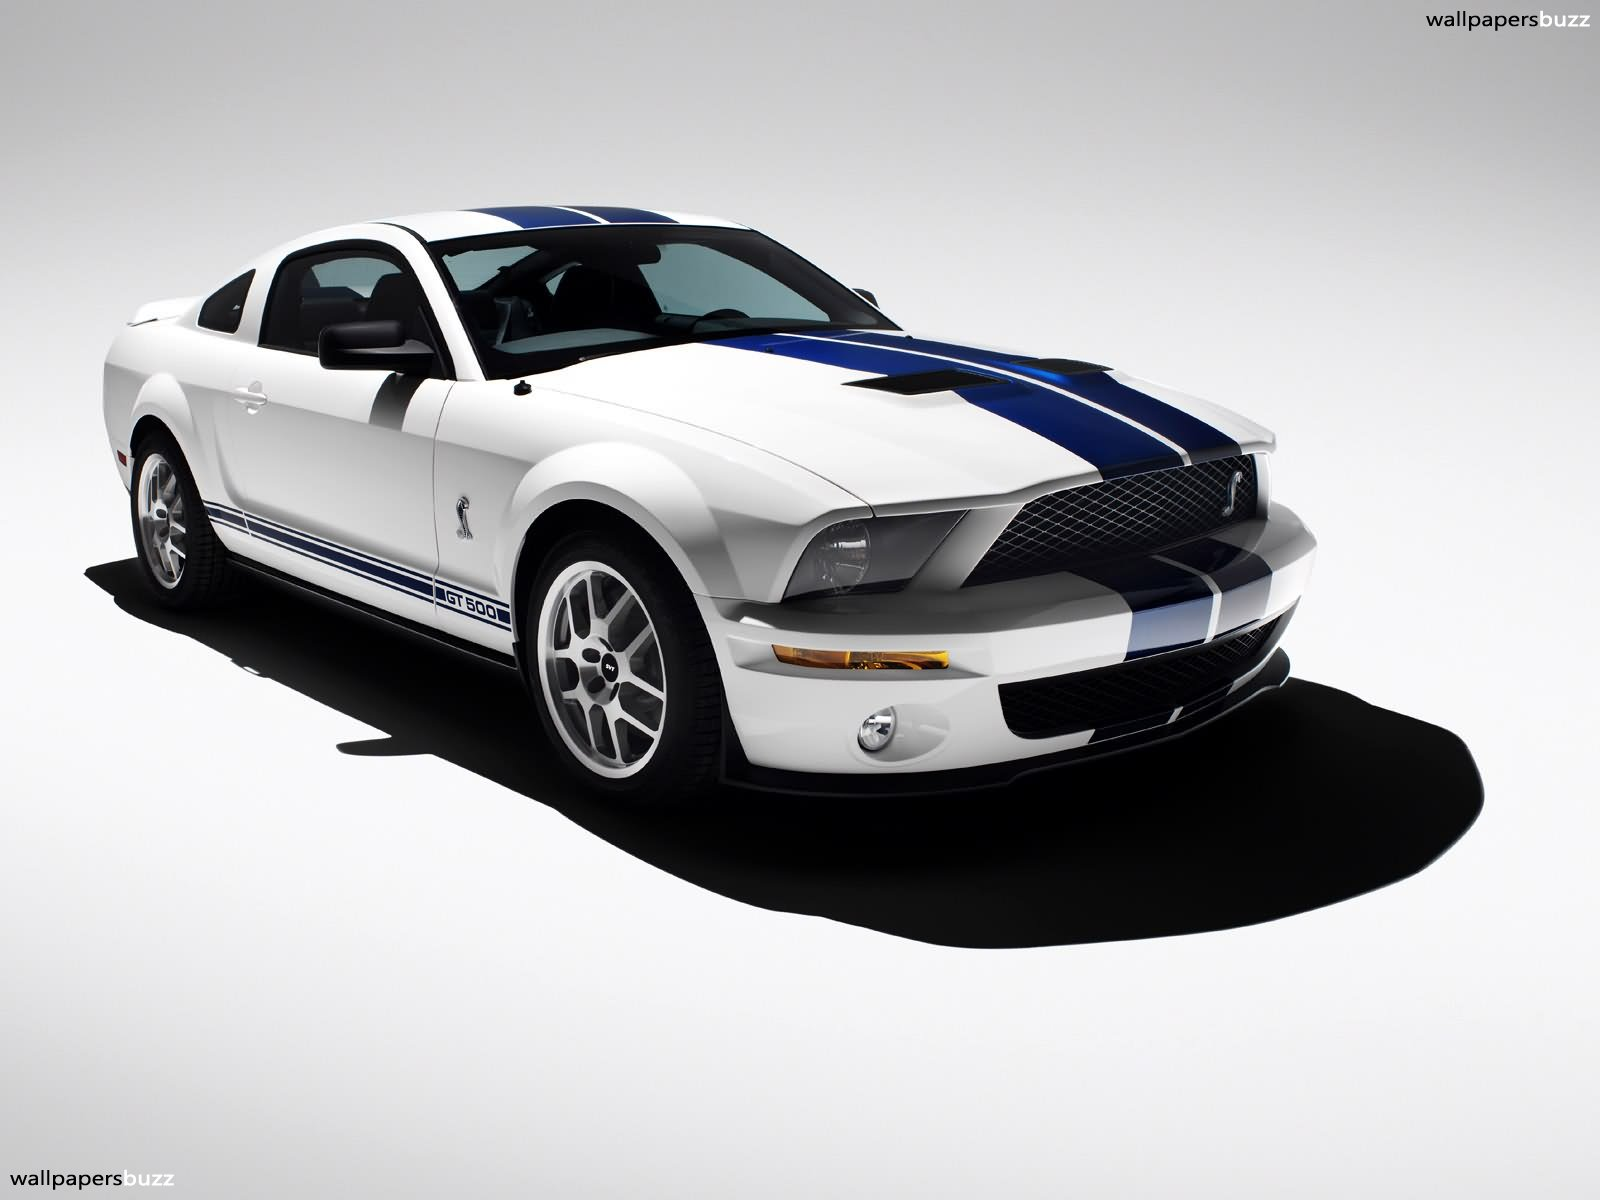 Ford mustang shelby gt500 car and electronic wallpaper - Mustang shelby ...